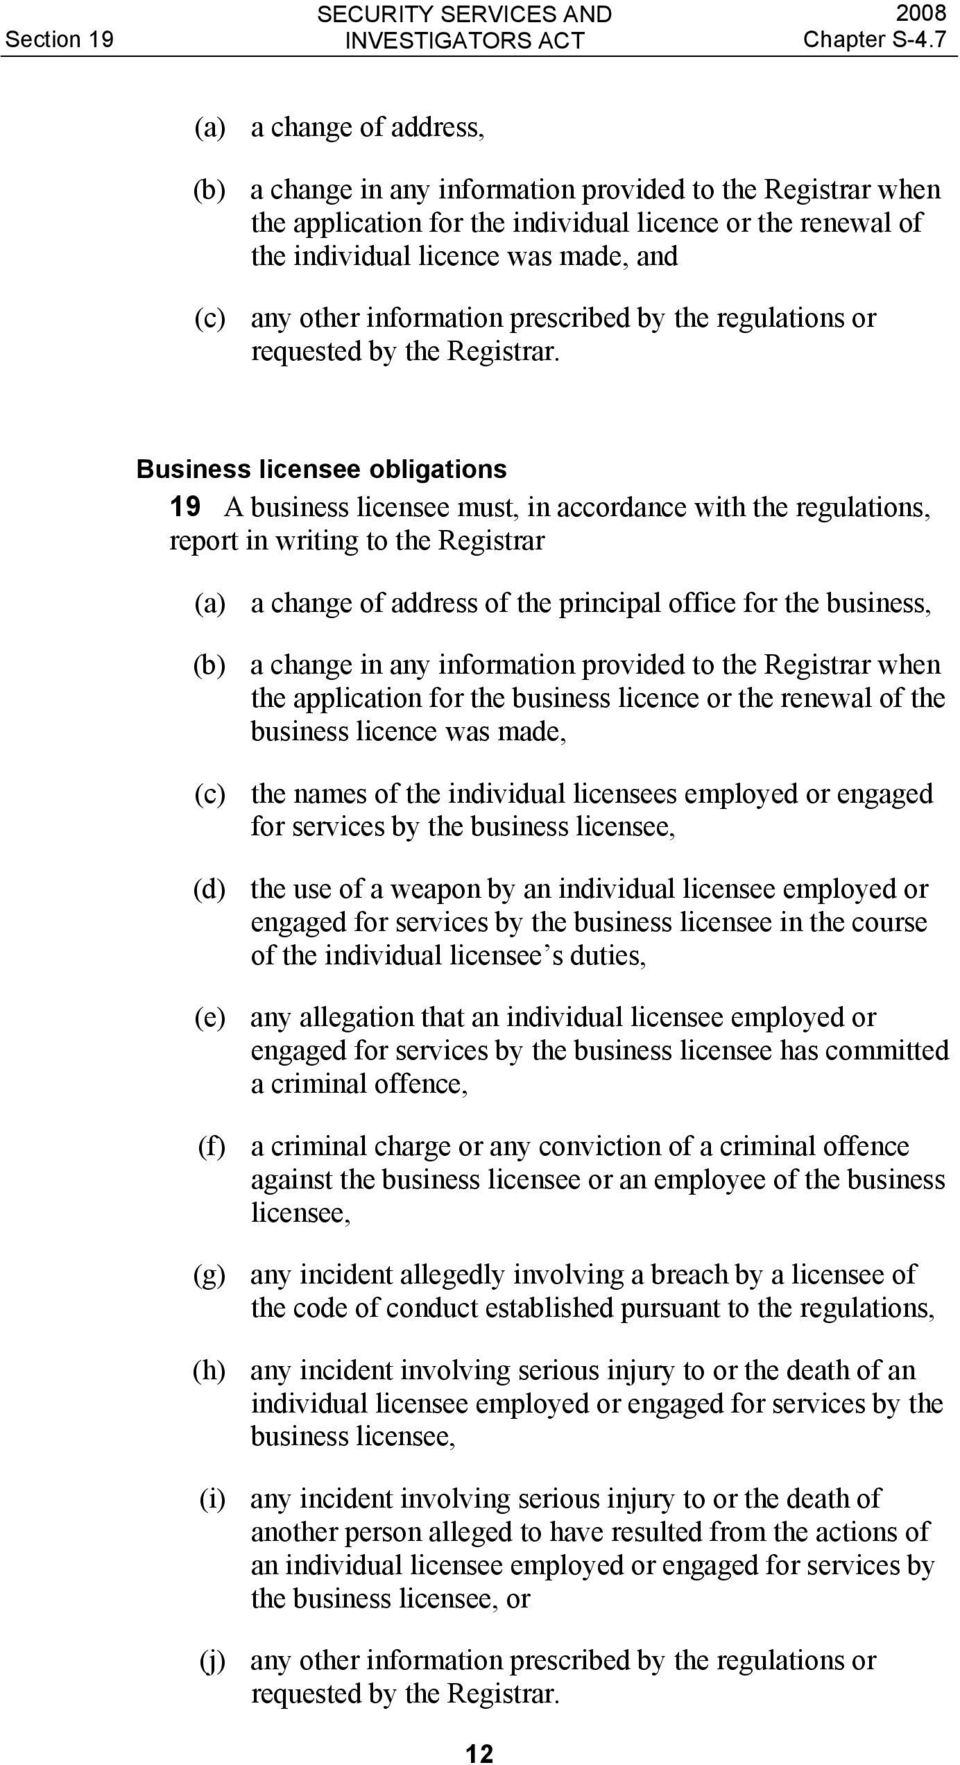 Business licensee obligations 19 A business licensee must, in accordance with the regulations, report in writing to the Registrar (a) a change of address of the principal office for the business, (b)